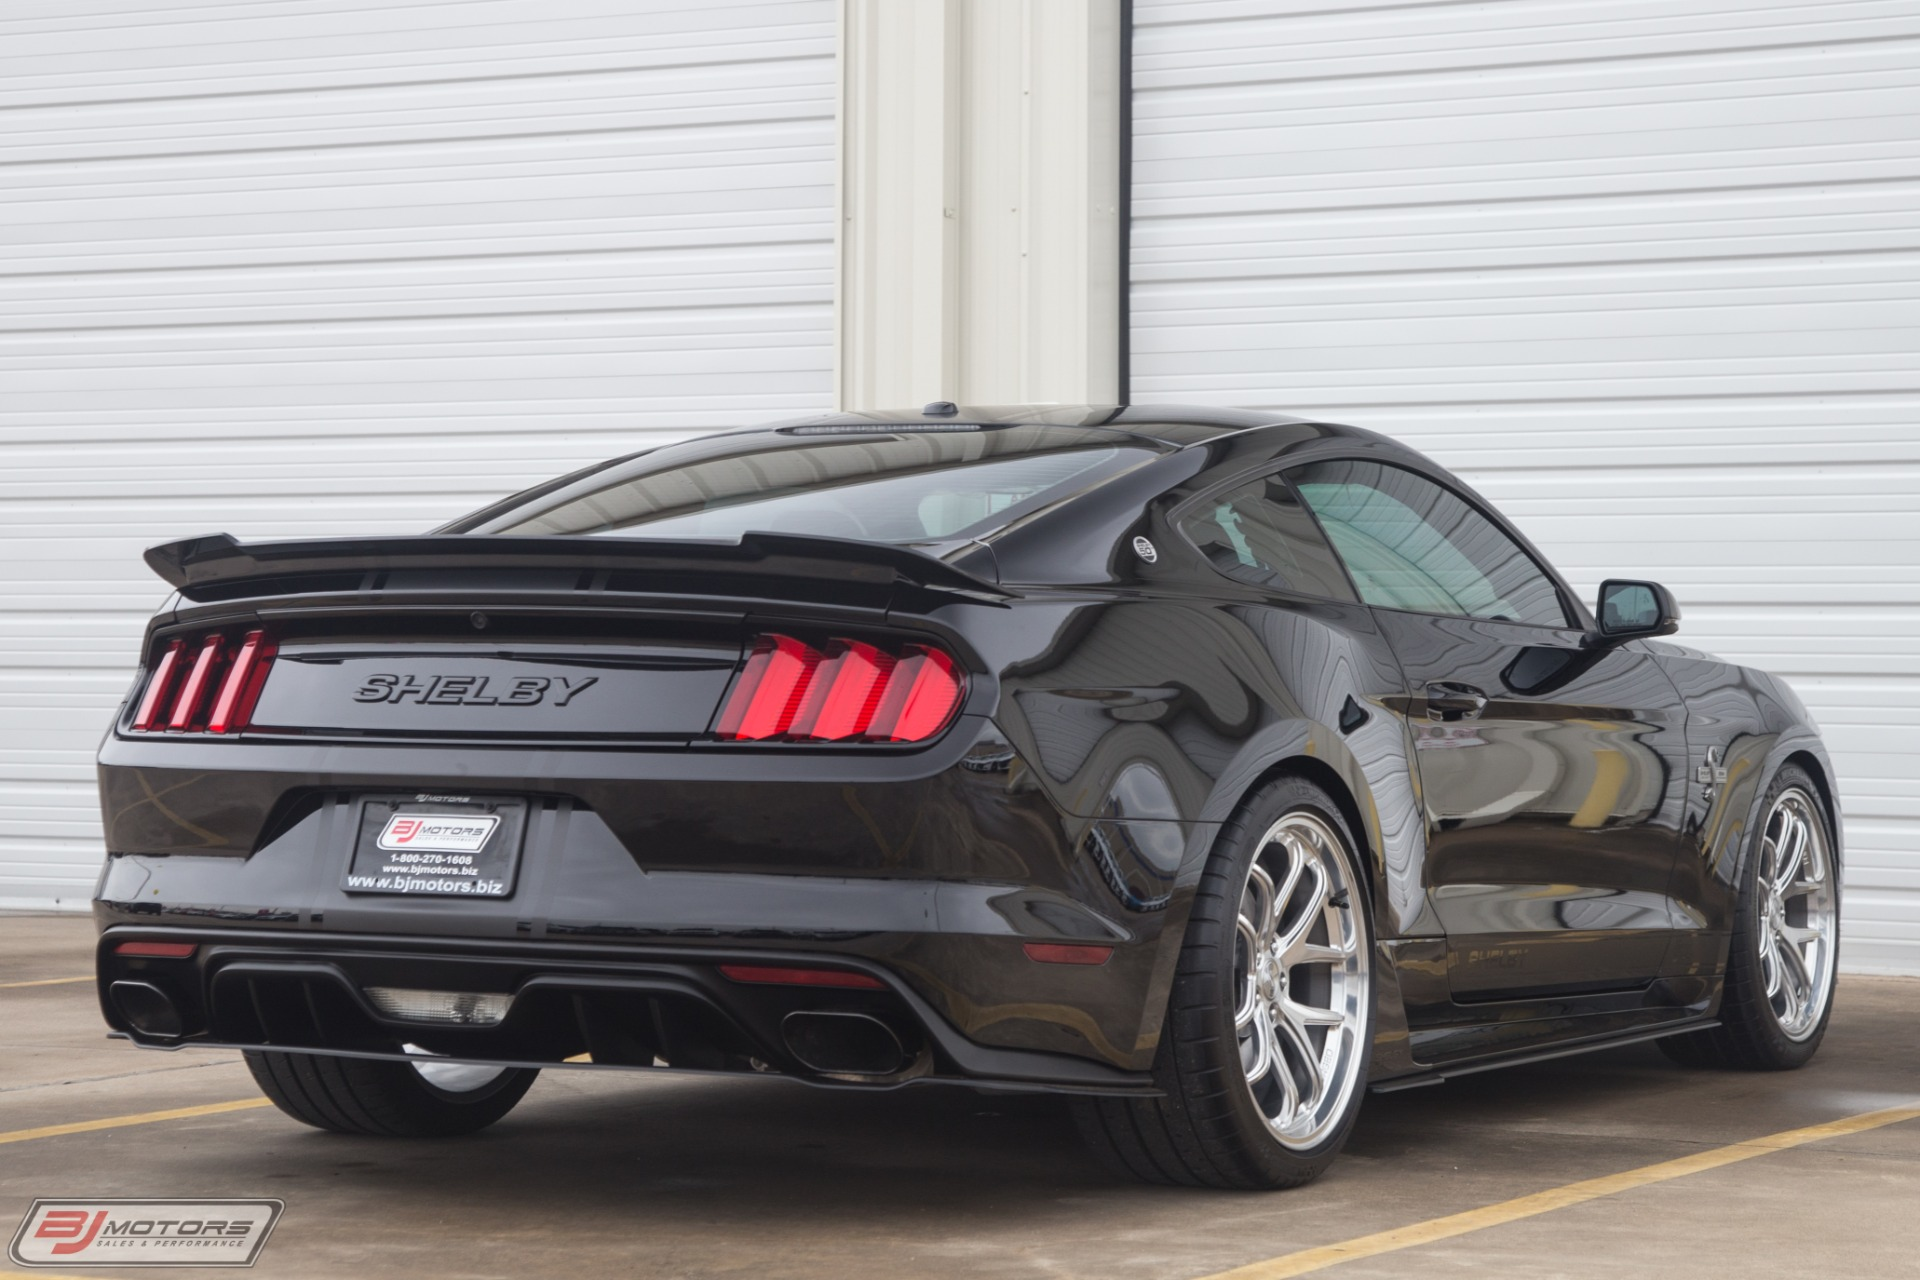 Used-2017-Ford-Mustang-GT-Shelby-Super-Snake-750HP